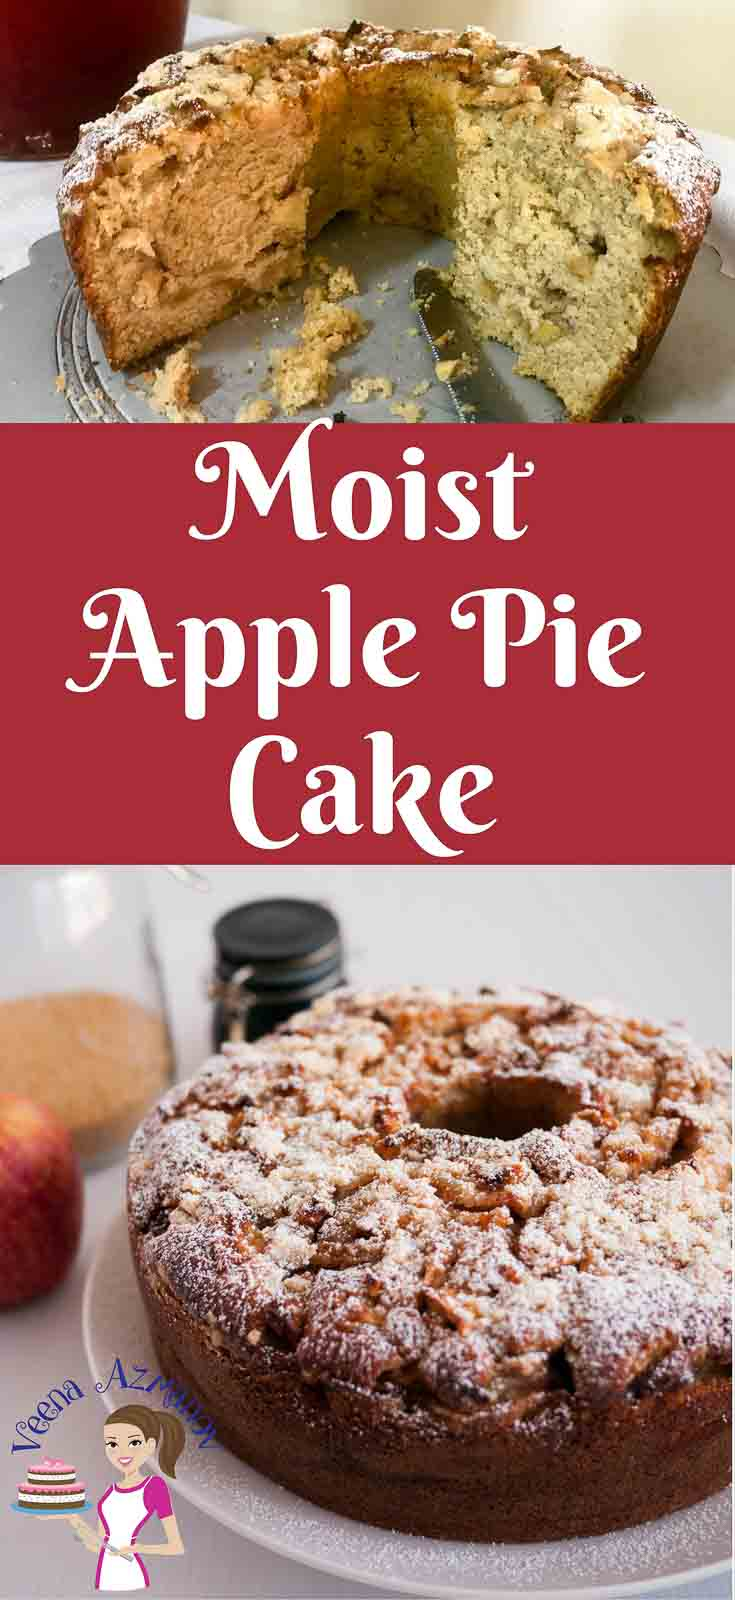 This delicious moist apple pie cake is an absolute treat in fall with juicy apple pie filling flavored with exotic spices of cinnamon, ginger and nutmeg baked in a smooth cream cheese cake batter. Then topped with crumble topping for that ultimate crisp.